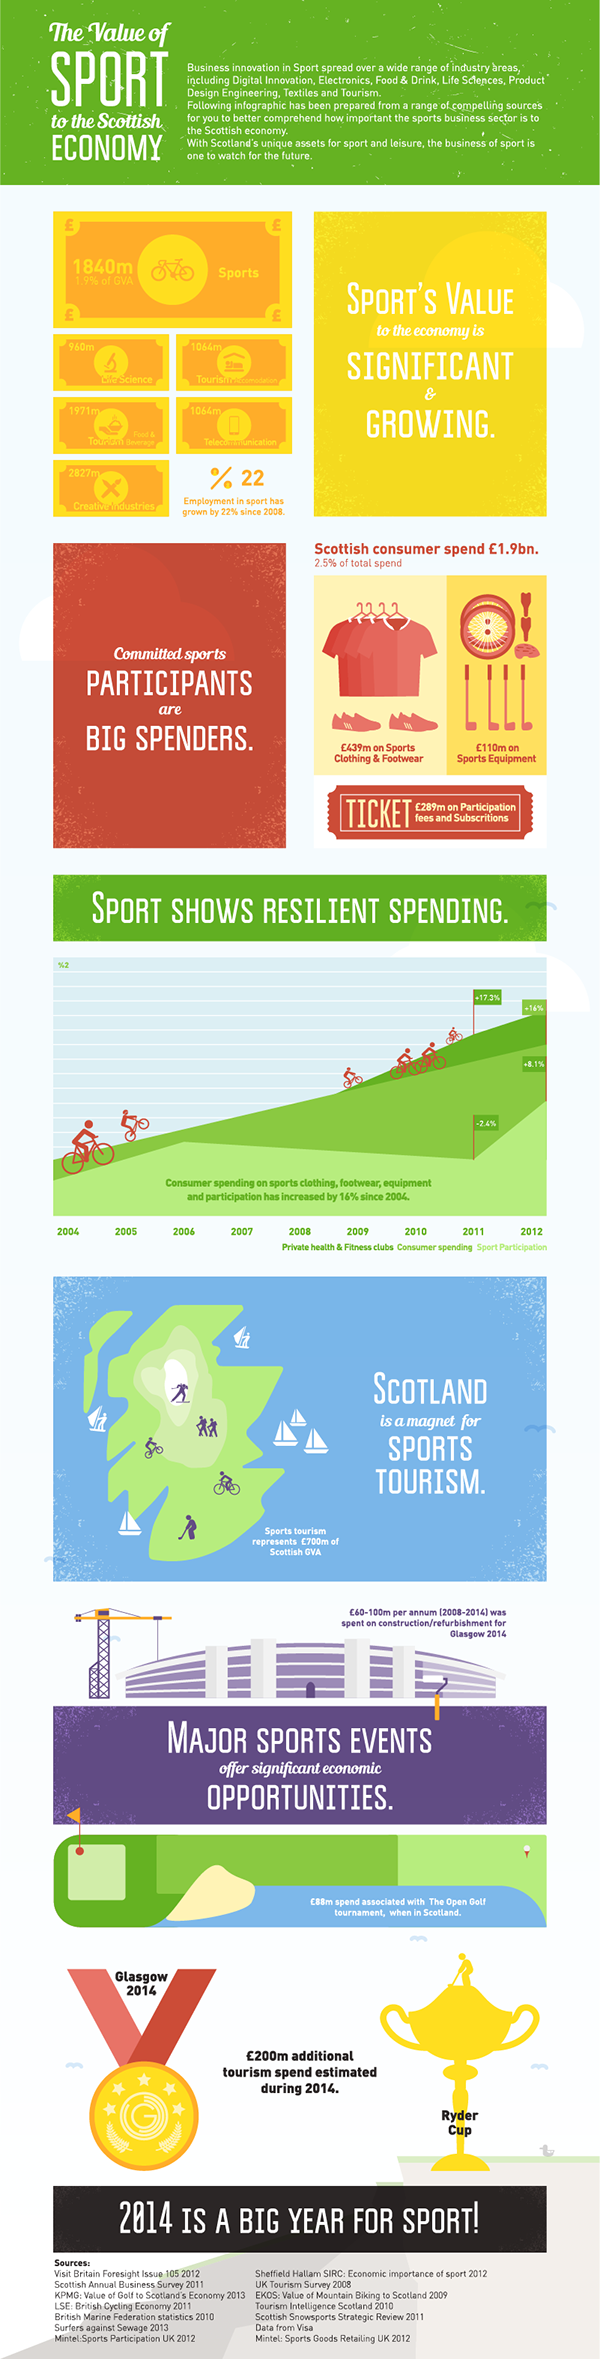 sport,econmy,infographic,scotland,Cycling,golf,growth,Bicycle,accessories,graph,chart,construction,refurbishment,cup,Tournament